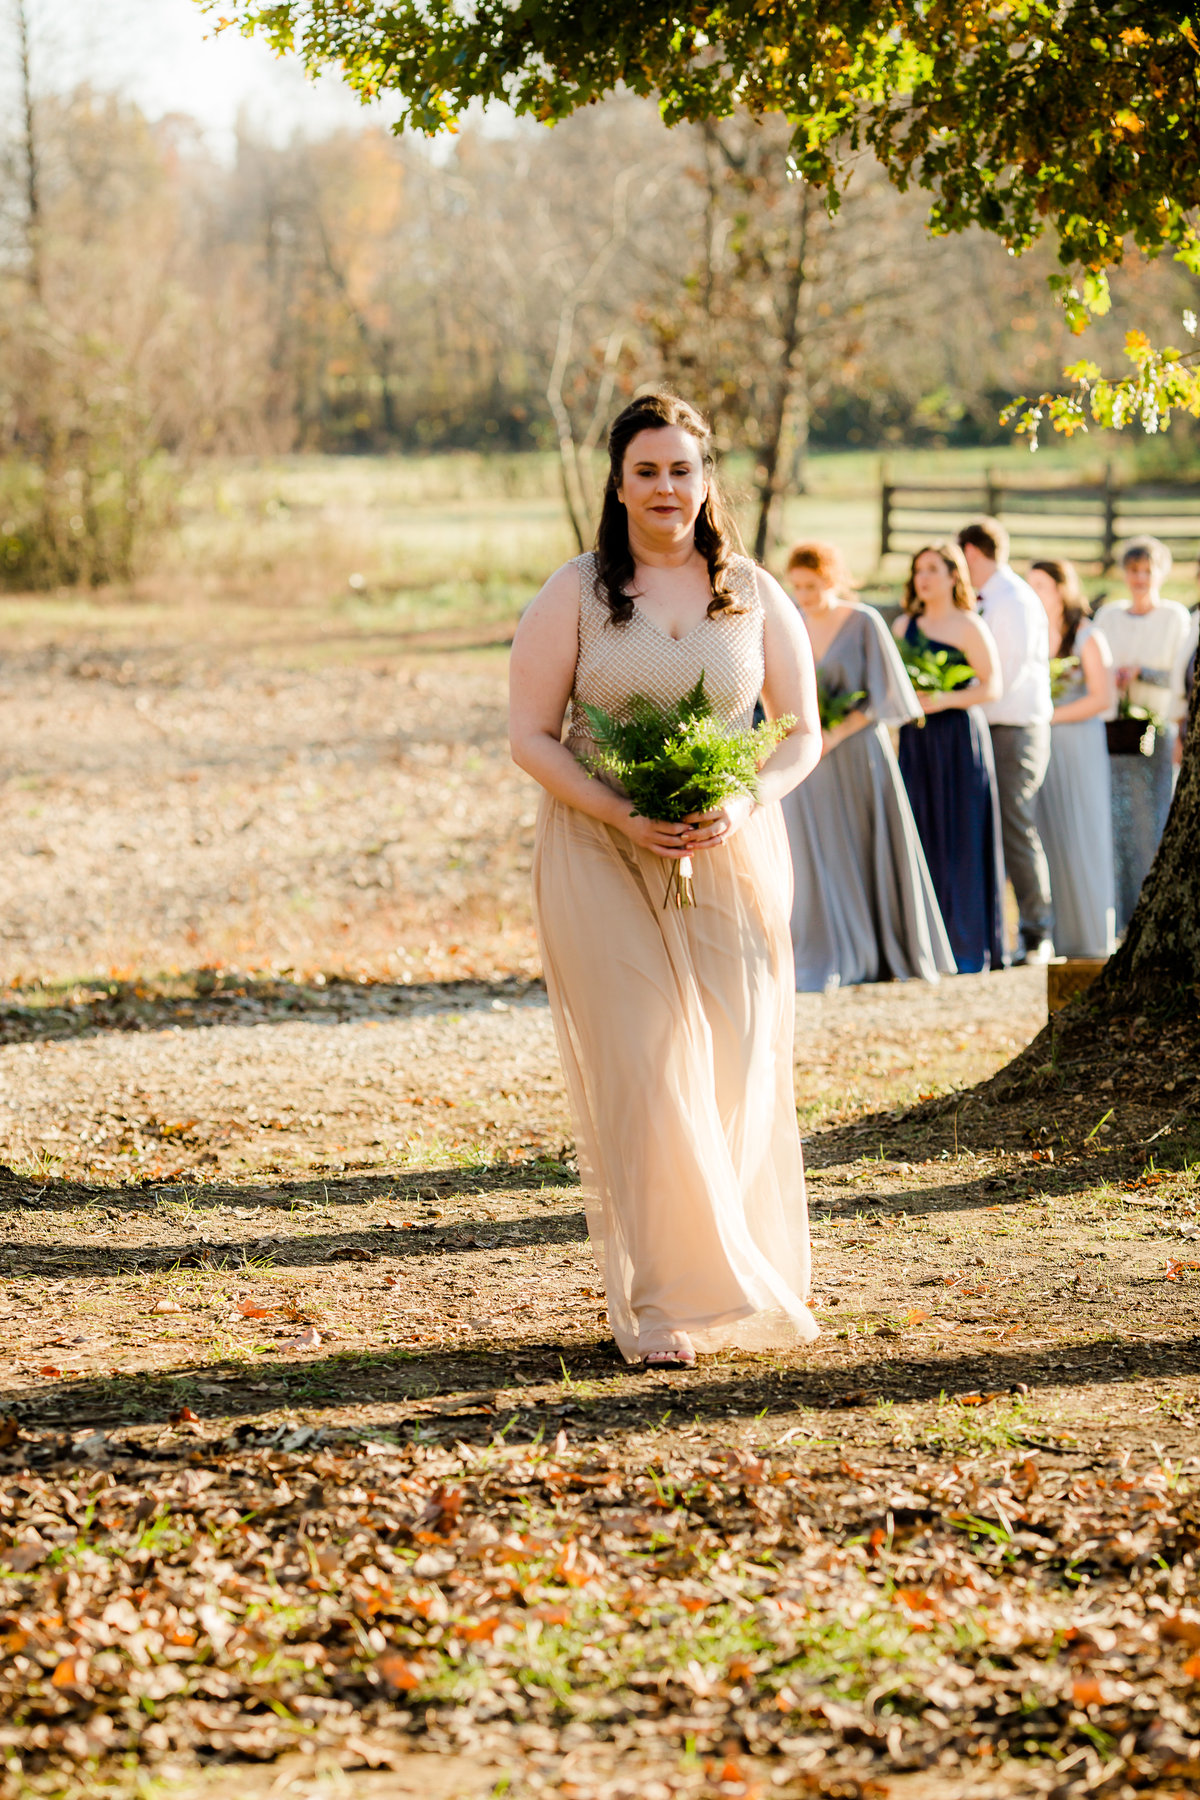 Cactus Creek Barn - Dickson Wedding - Dickson TN - Outdoor Weddings - Outdoor Wedding - Nashville Wedding - Nashville Weddings - Nashville Wedding Photographer - Nashville Wedding Photographers019